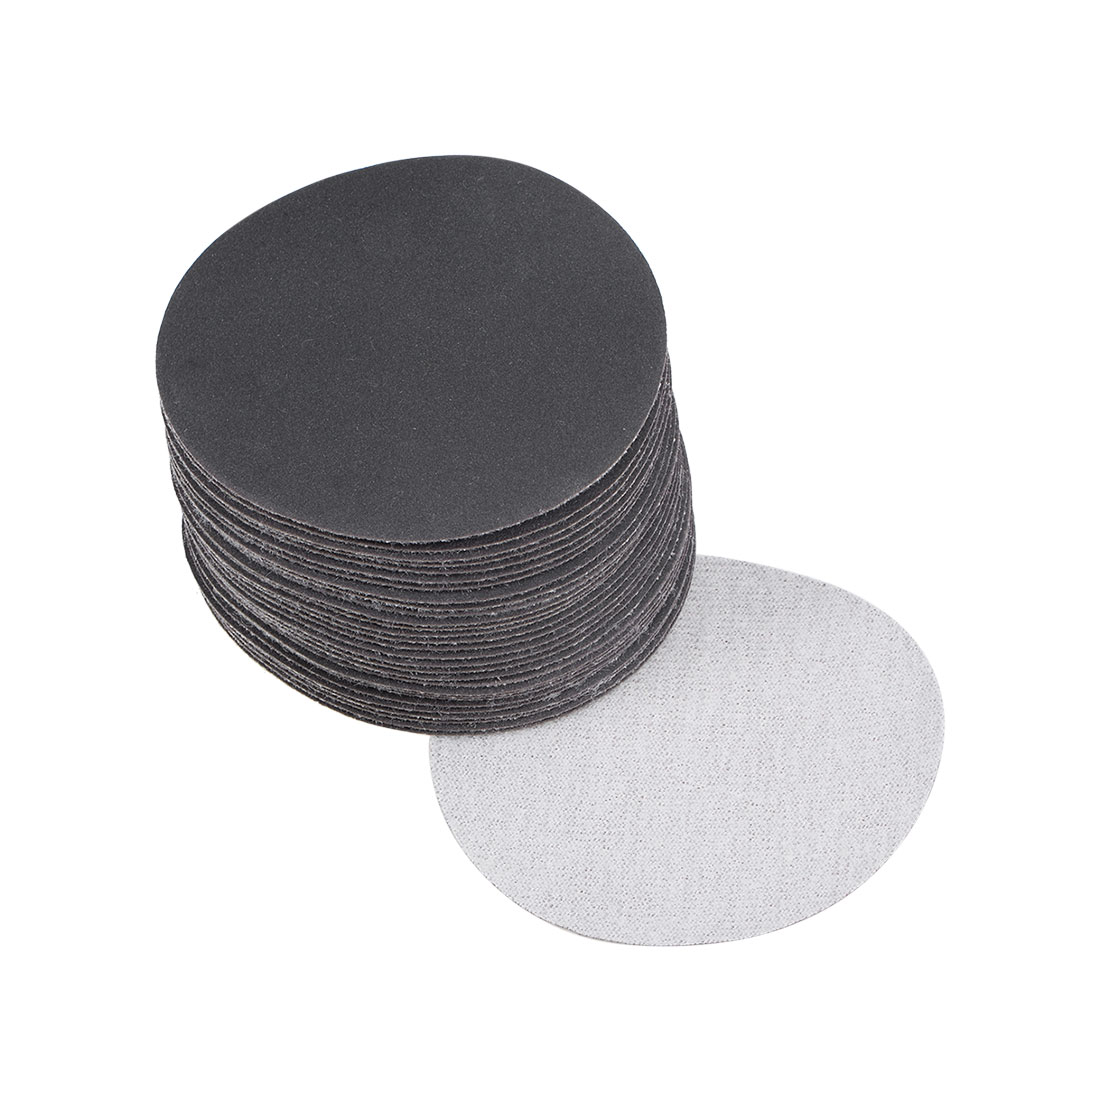 3 inch Wet Dry Discs 400 Grit Hook and Loop Sanding Disc Silicon Carbide 30pcs